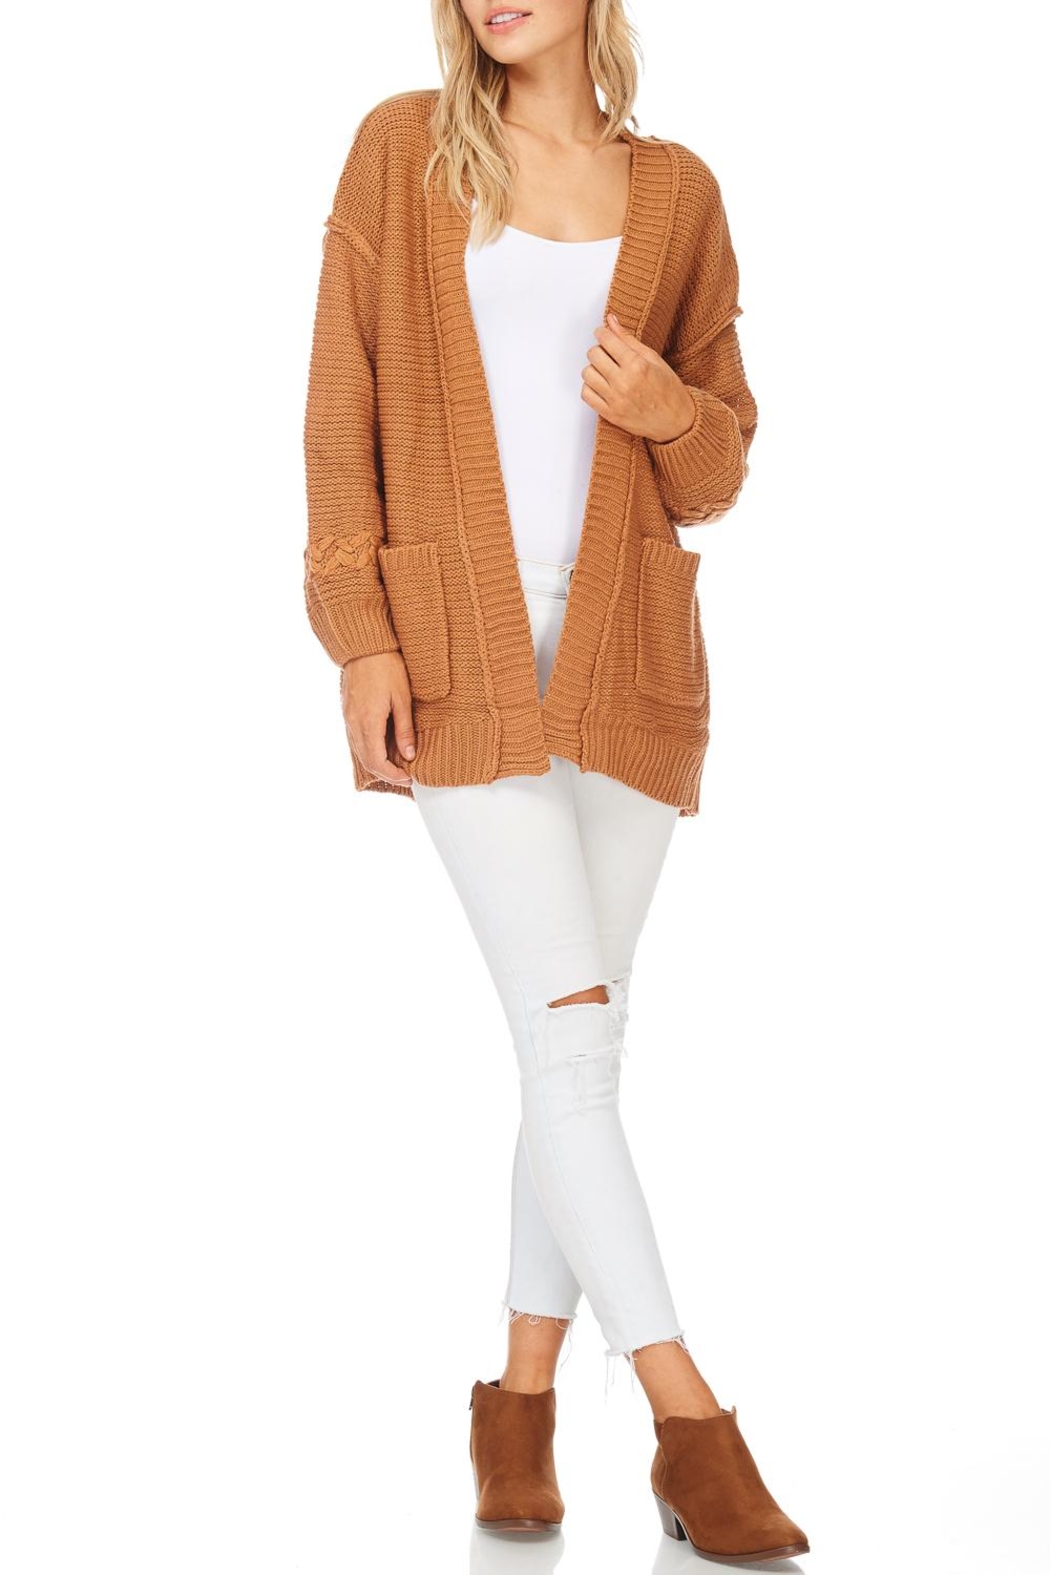 LoveRiche Rust Knit Sweater - Main Image